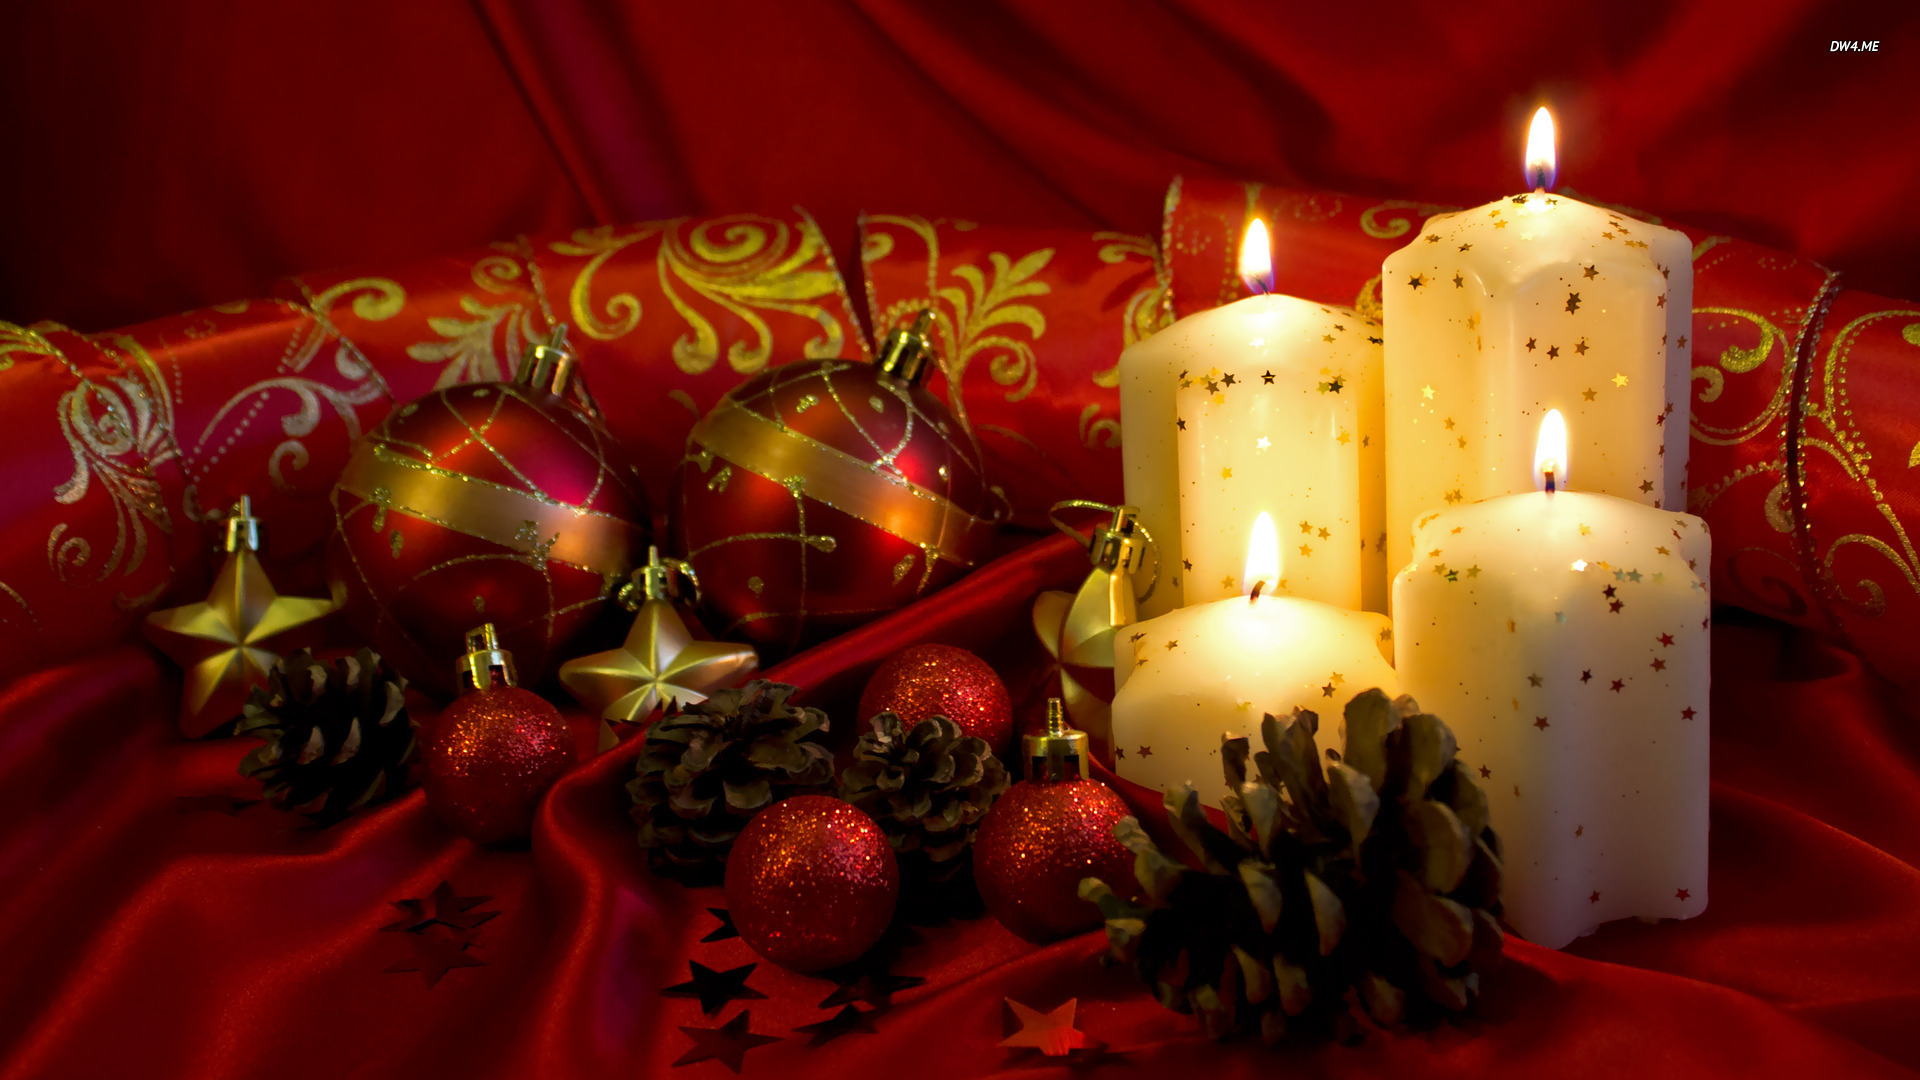 Christmas decorations wallpaper   Photography wallpapers   1024 1920x1080